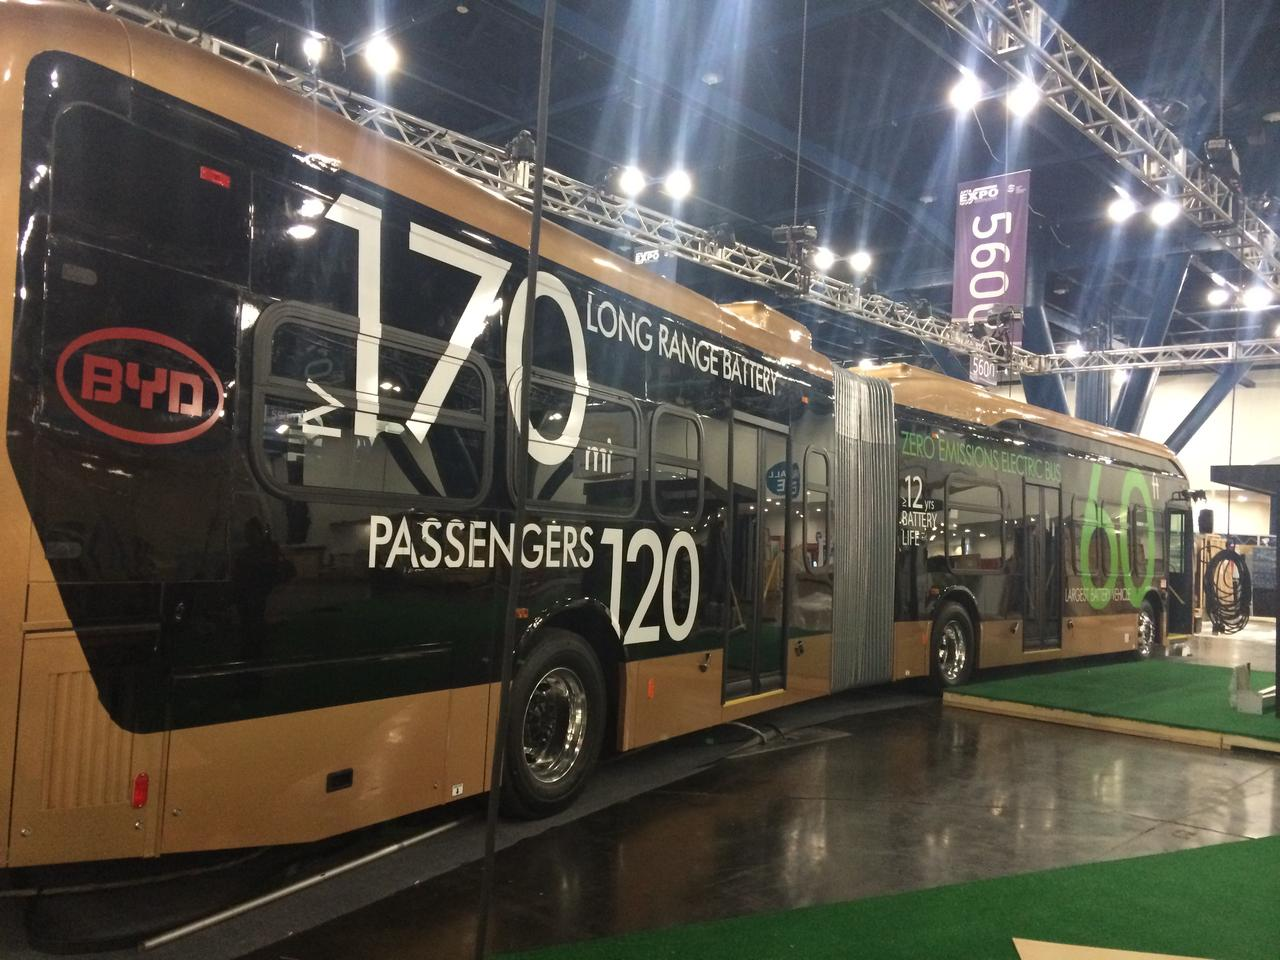 The world's largest battery electric vehicle carries 120 passengers over 170 miles per single electric charge